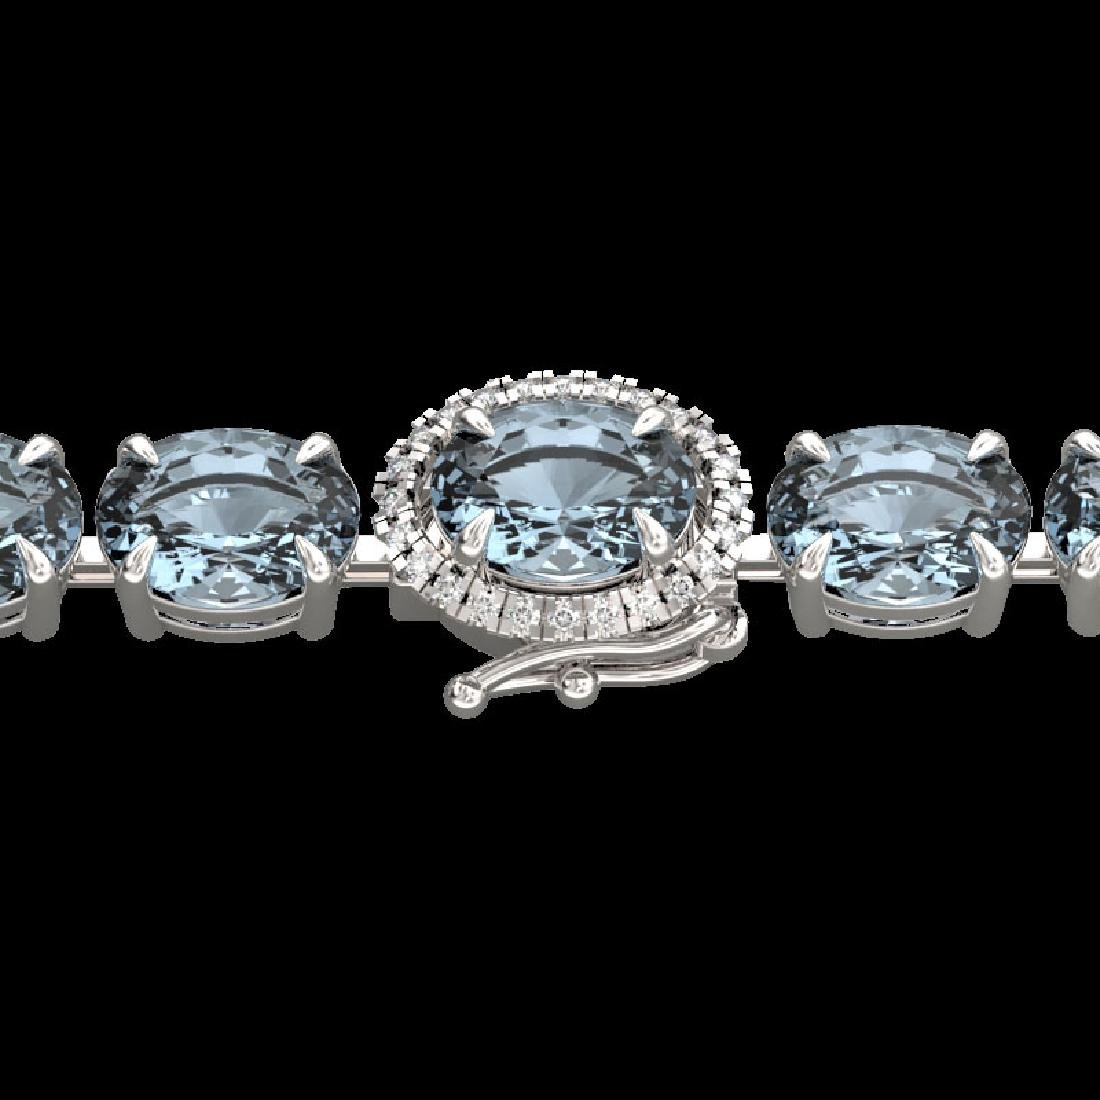 36 CTW Sky Blue Topaz & VS/SI Diamond Tennis Micro Halo